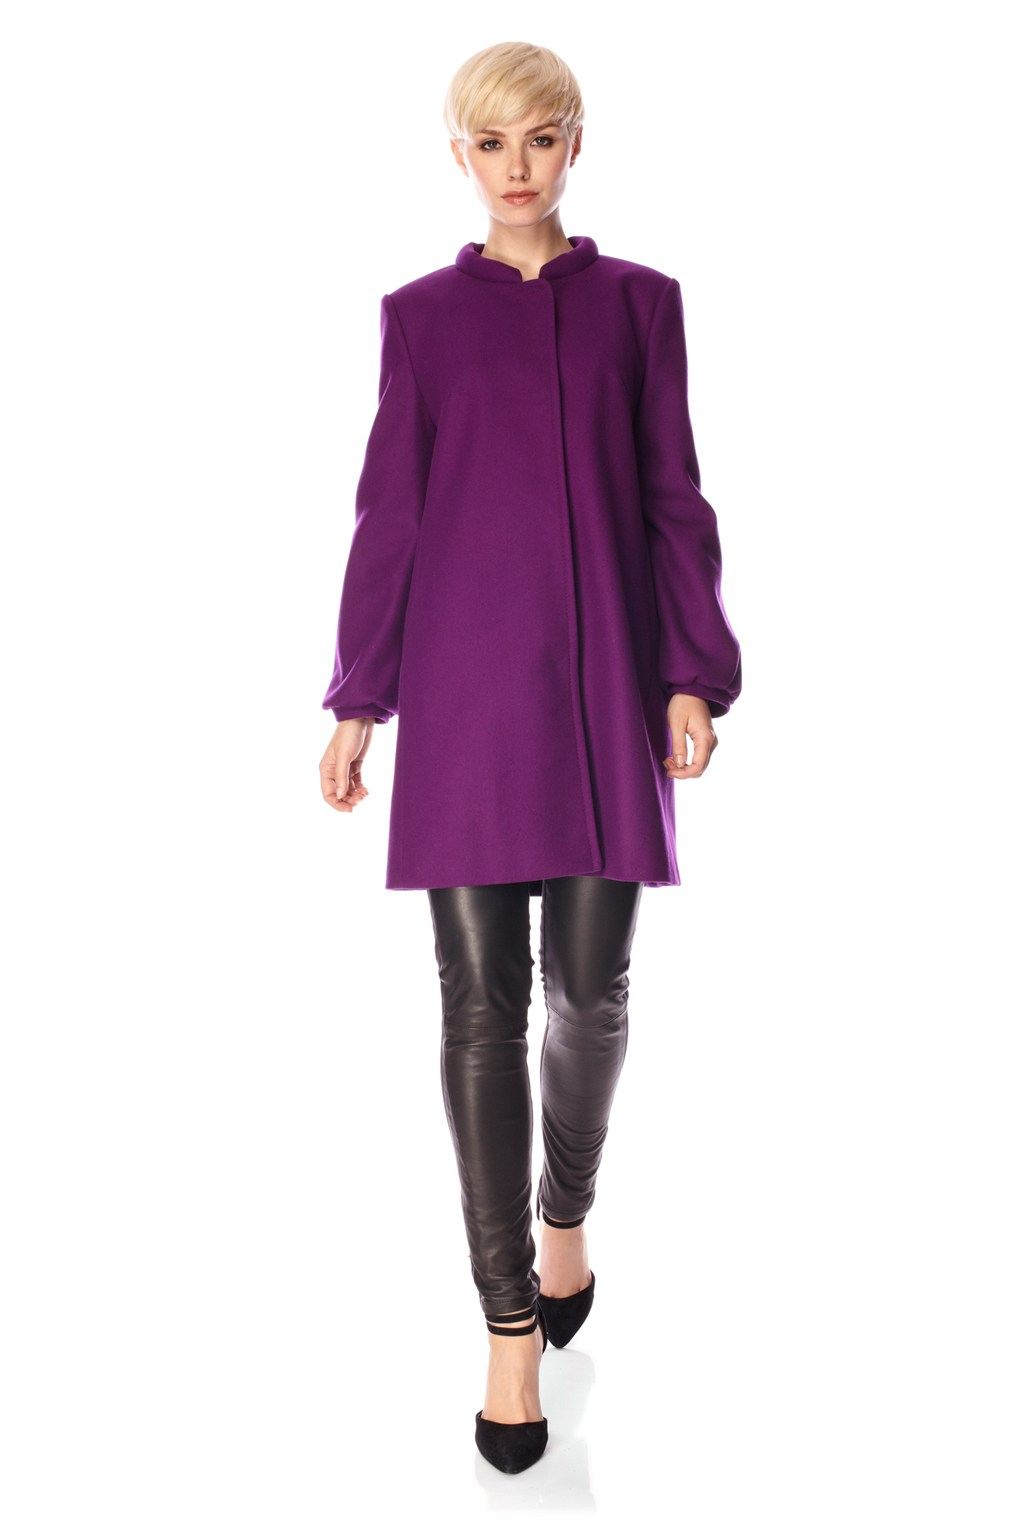 Find great deals on eBay for womens collarless coat. Shop with confidence.